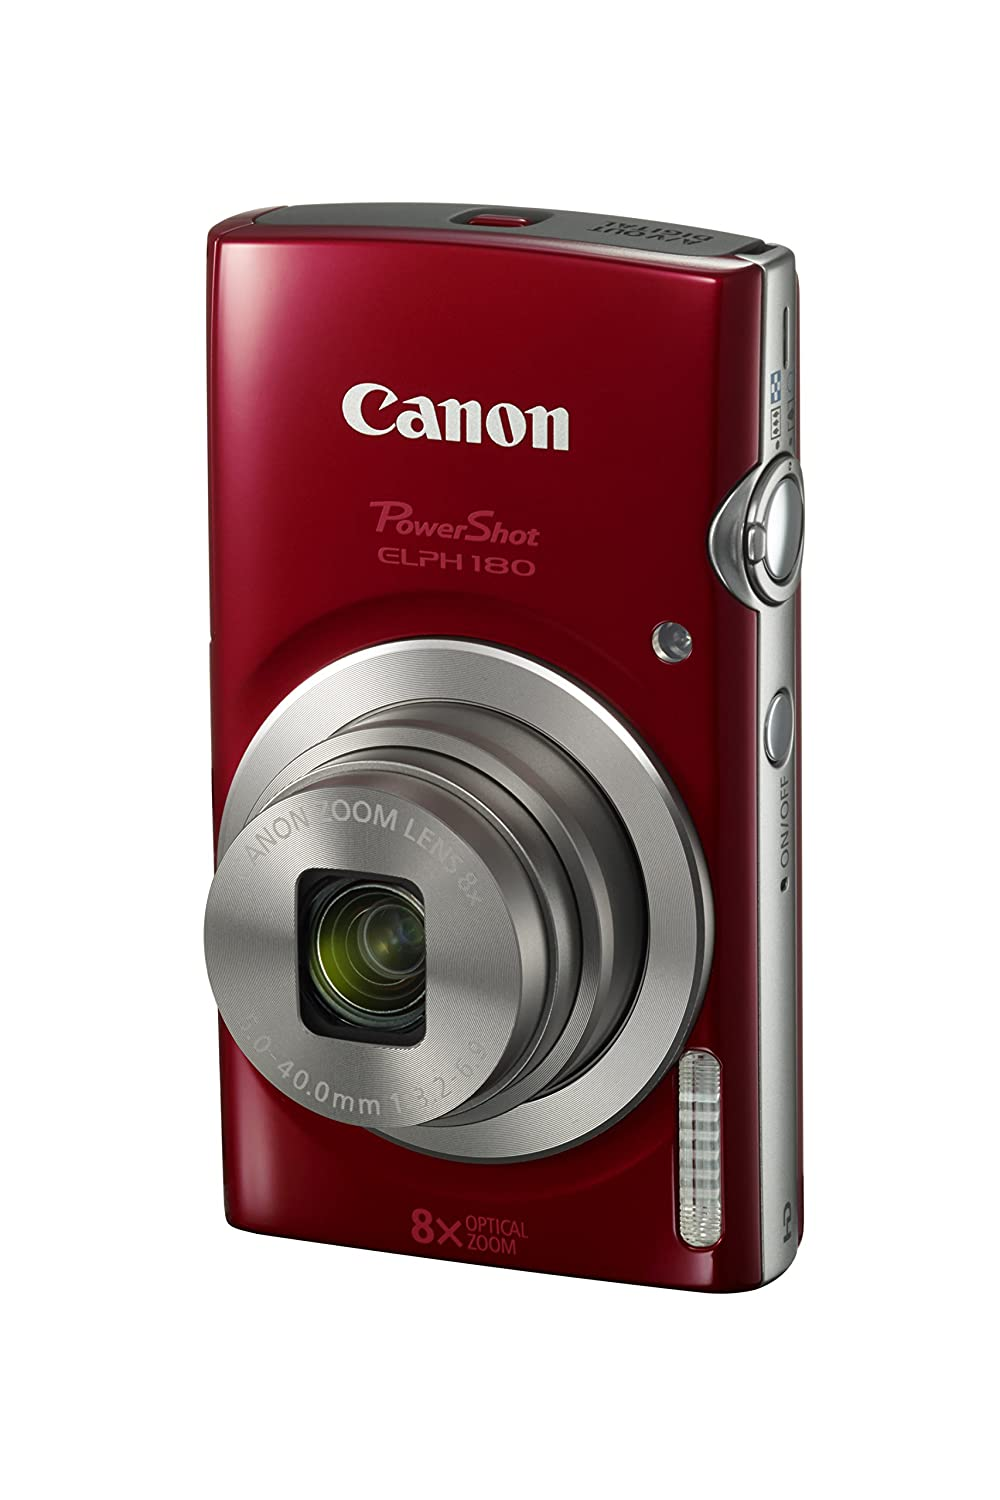 Canon PowerShot ELPH 180 (Red) with 20.0 MP CCD Sensor and 8x Optical Zoom Canon Canada (Direct) 1096C001